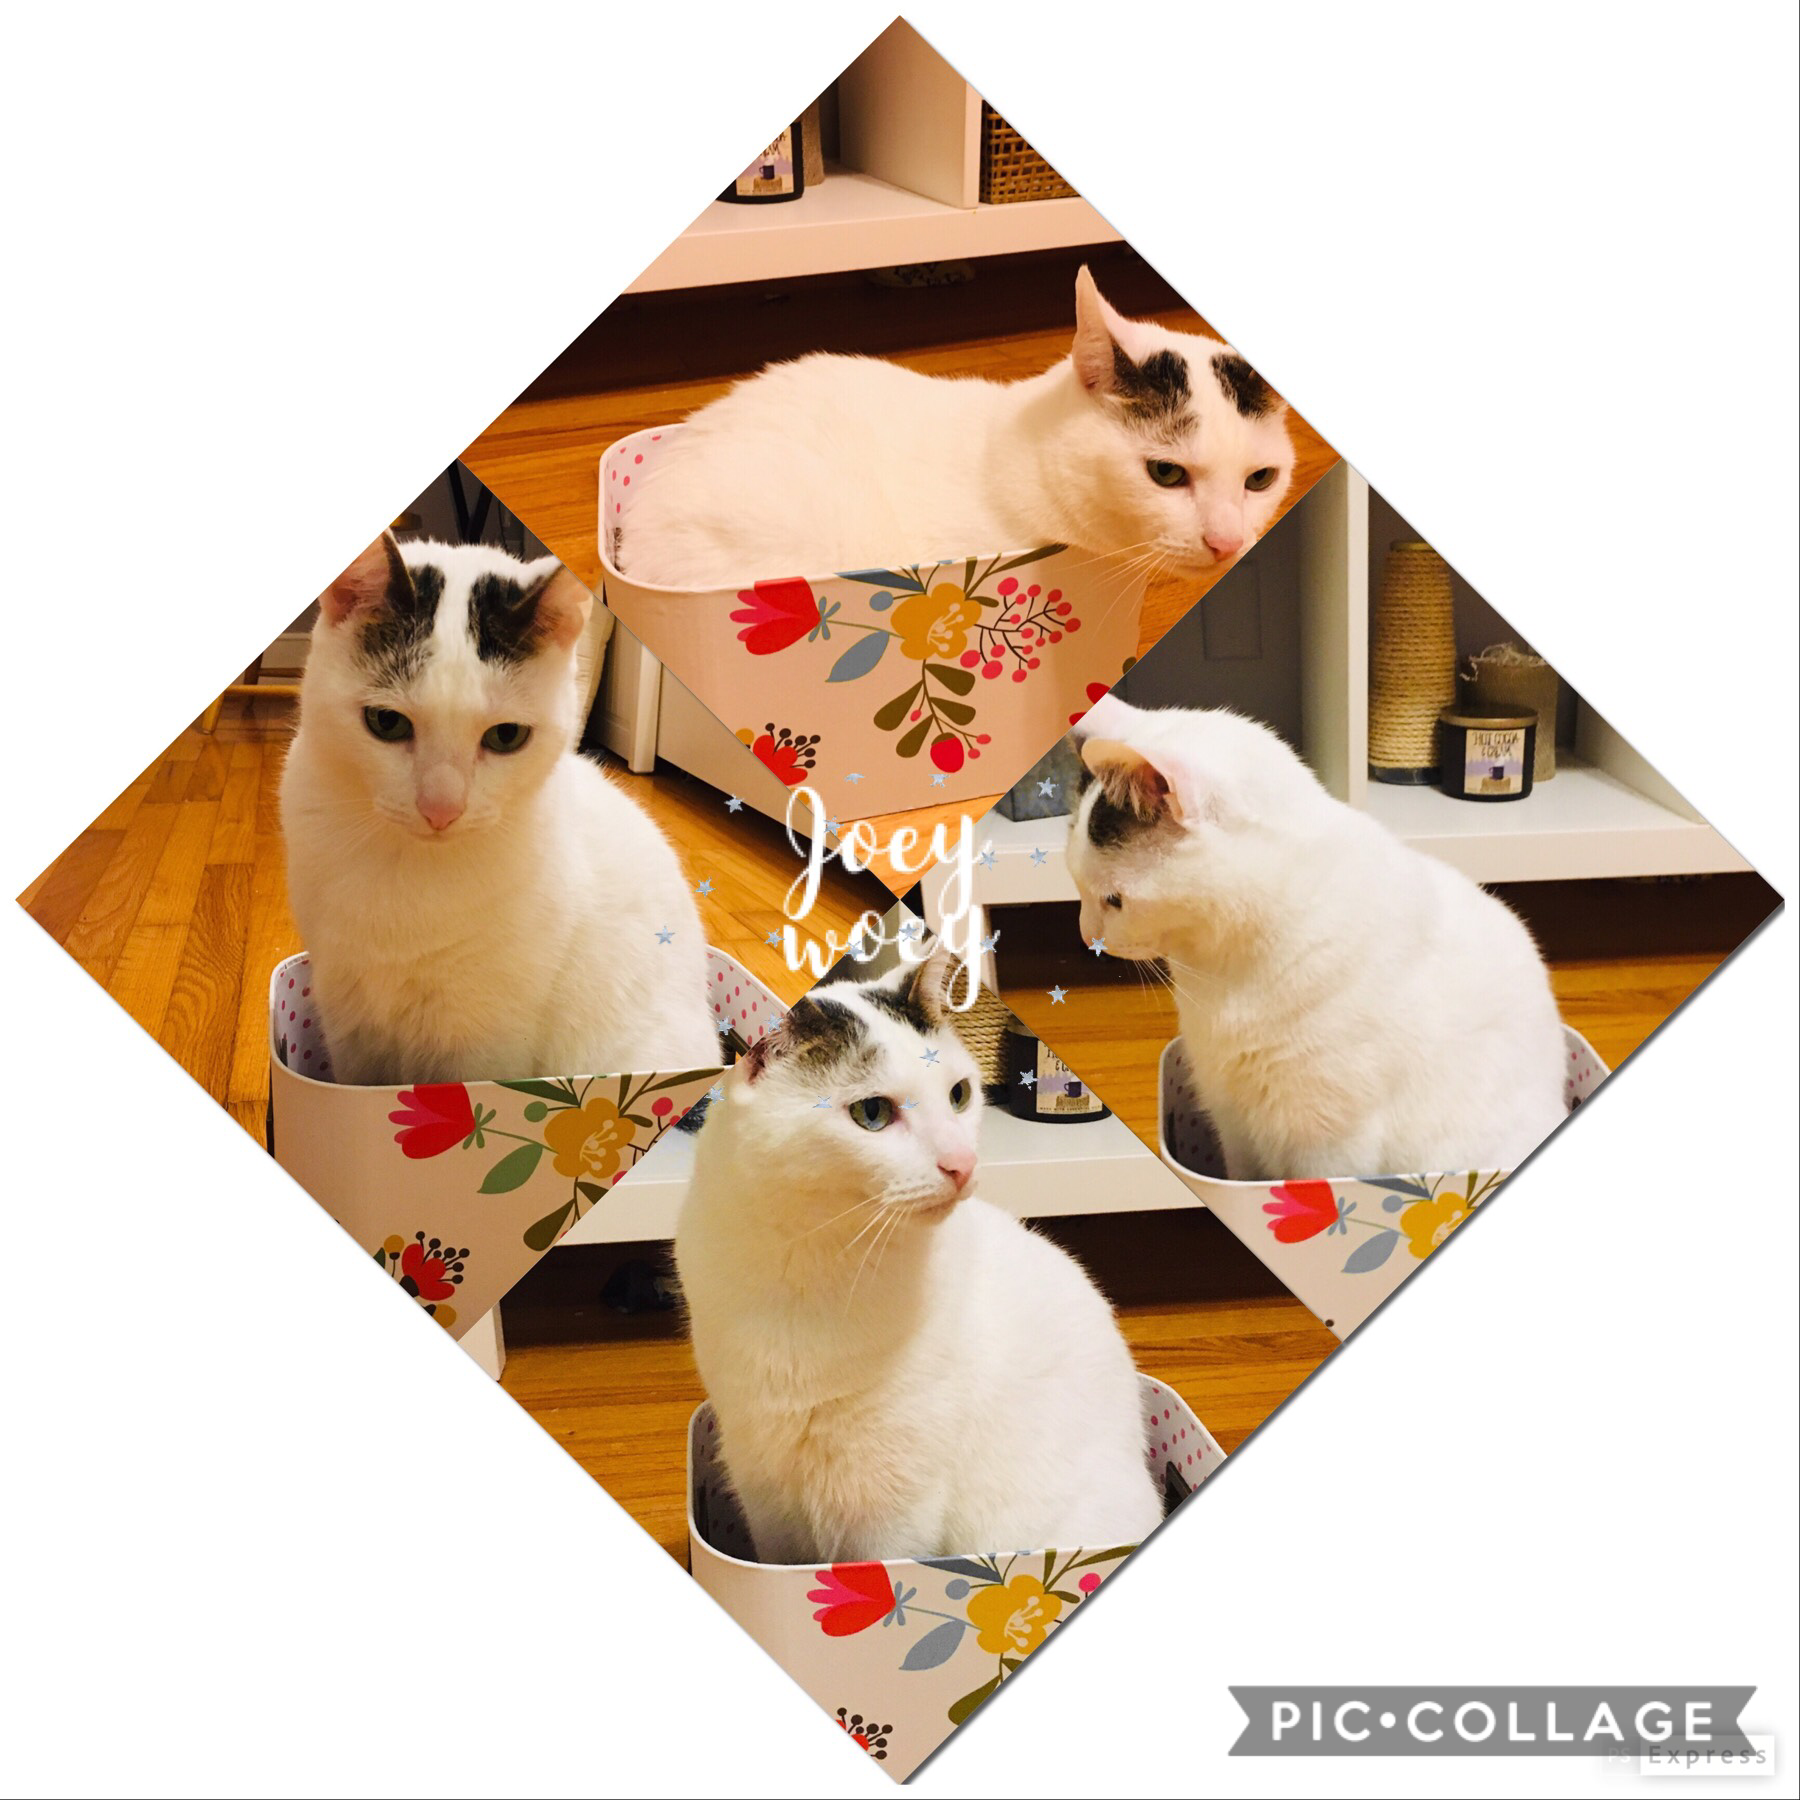 This is my cats YouTube channel- Joey the cute cat Woey